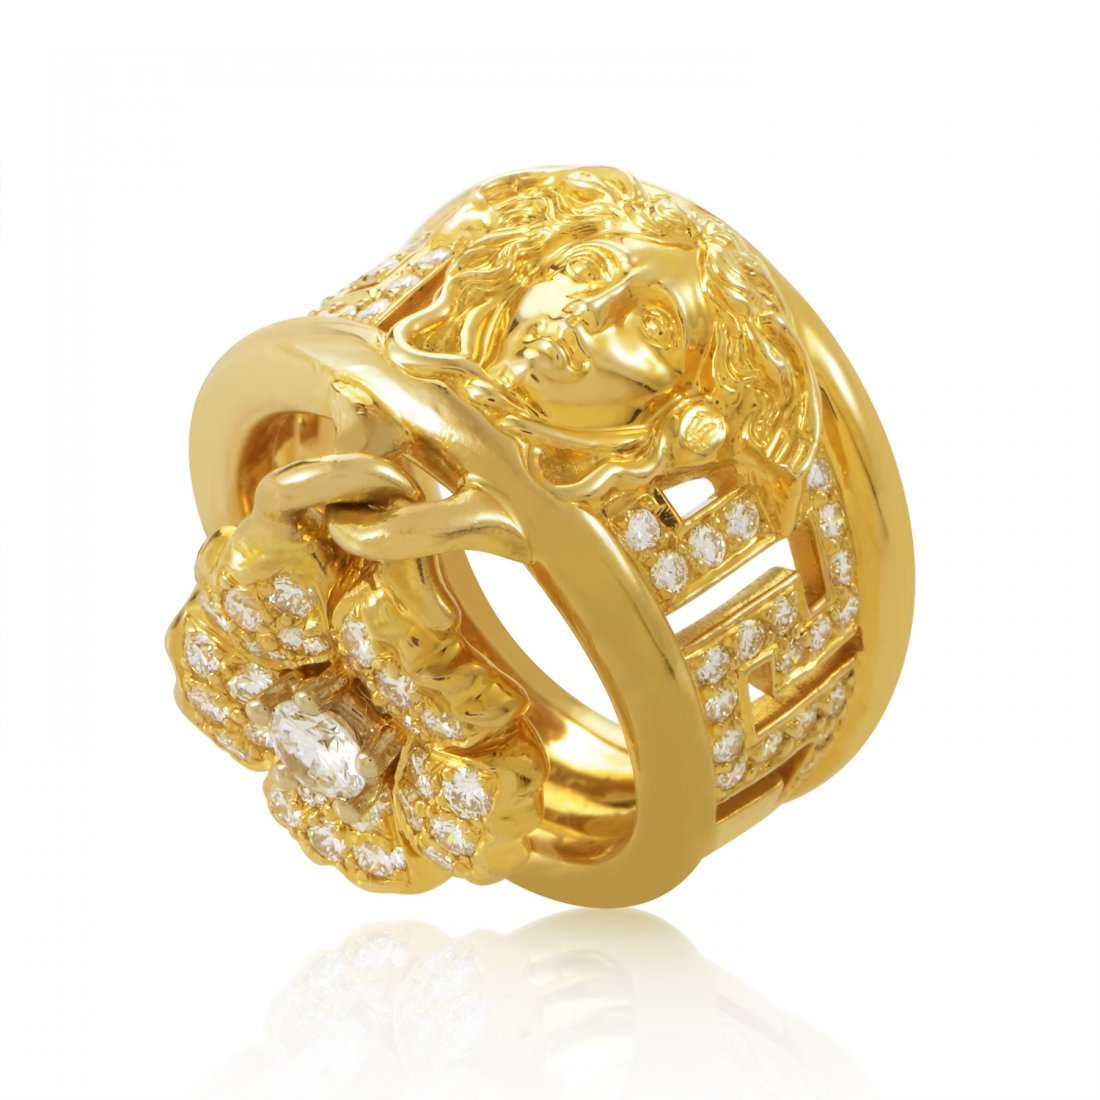 Versace 18K Yellow Gold Diamond Pave Flower Charm Ring